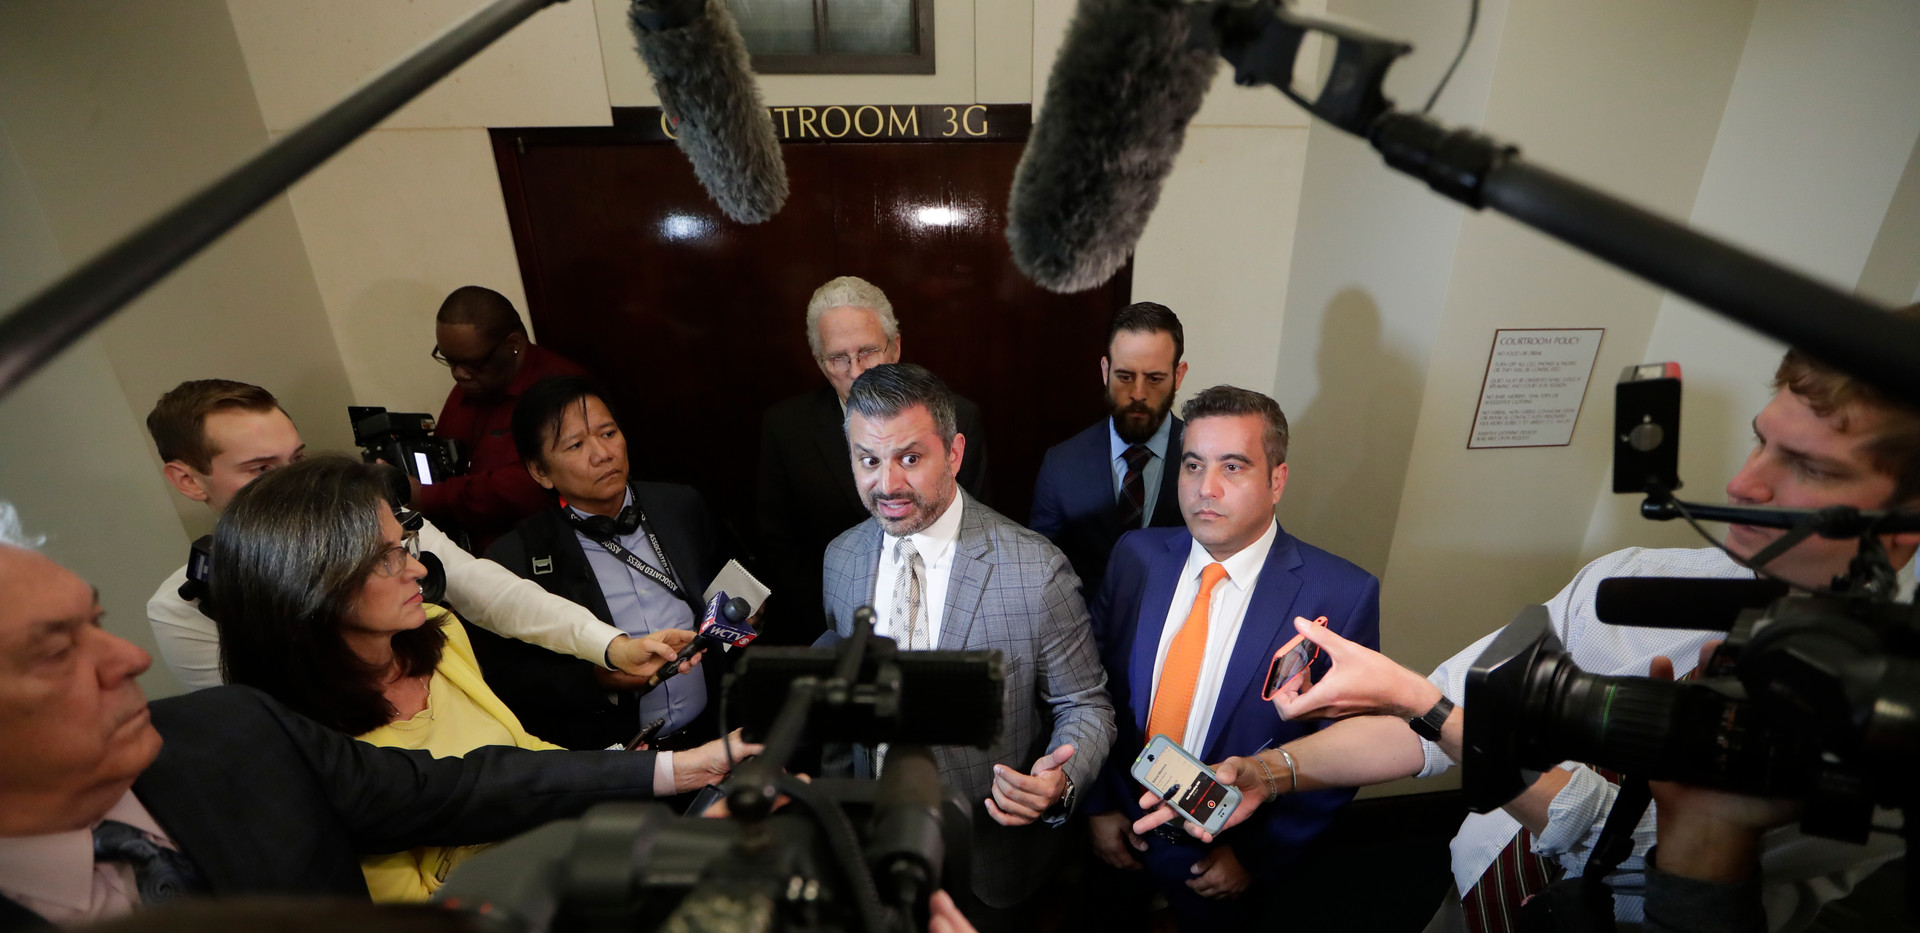 fredo Garcia's attorneys Saam Zangeneh, center, and Mauricio Padilla, right, speak with reporters Friday after Leon County jurors convicted their client for murdering Dan Markel in 2014.